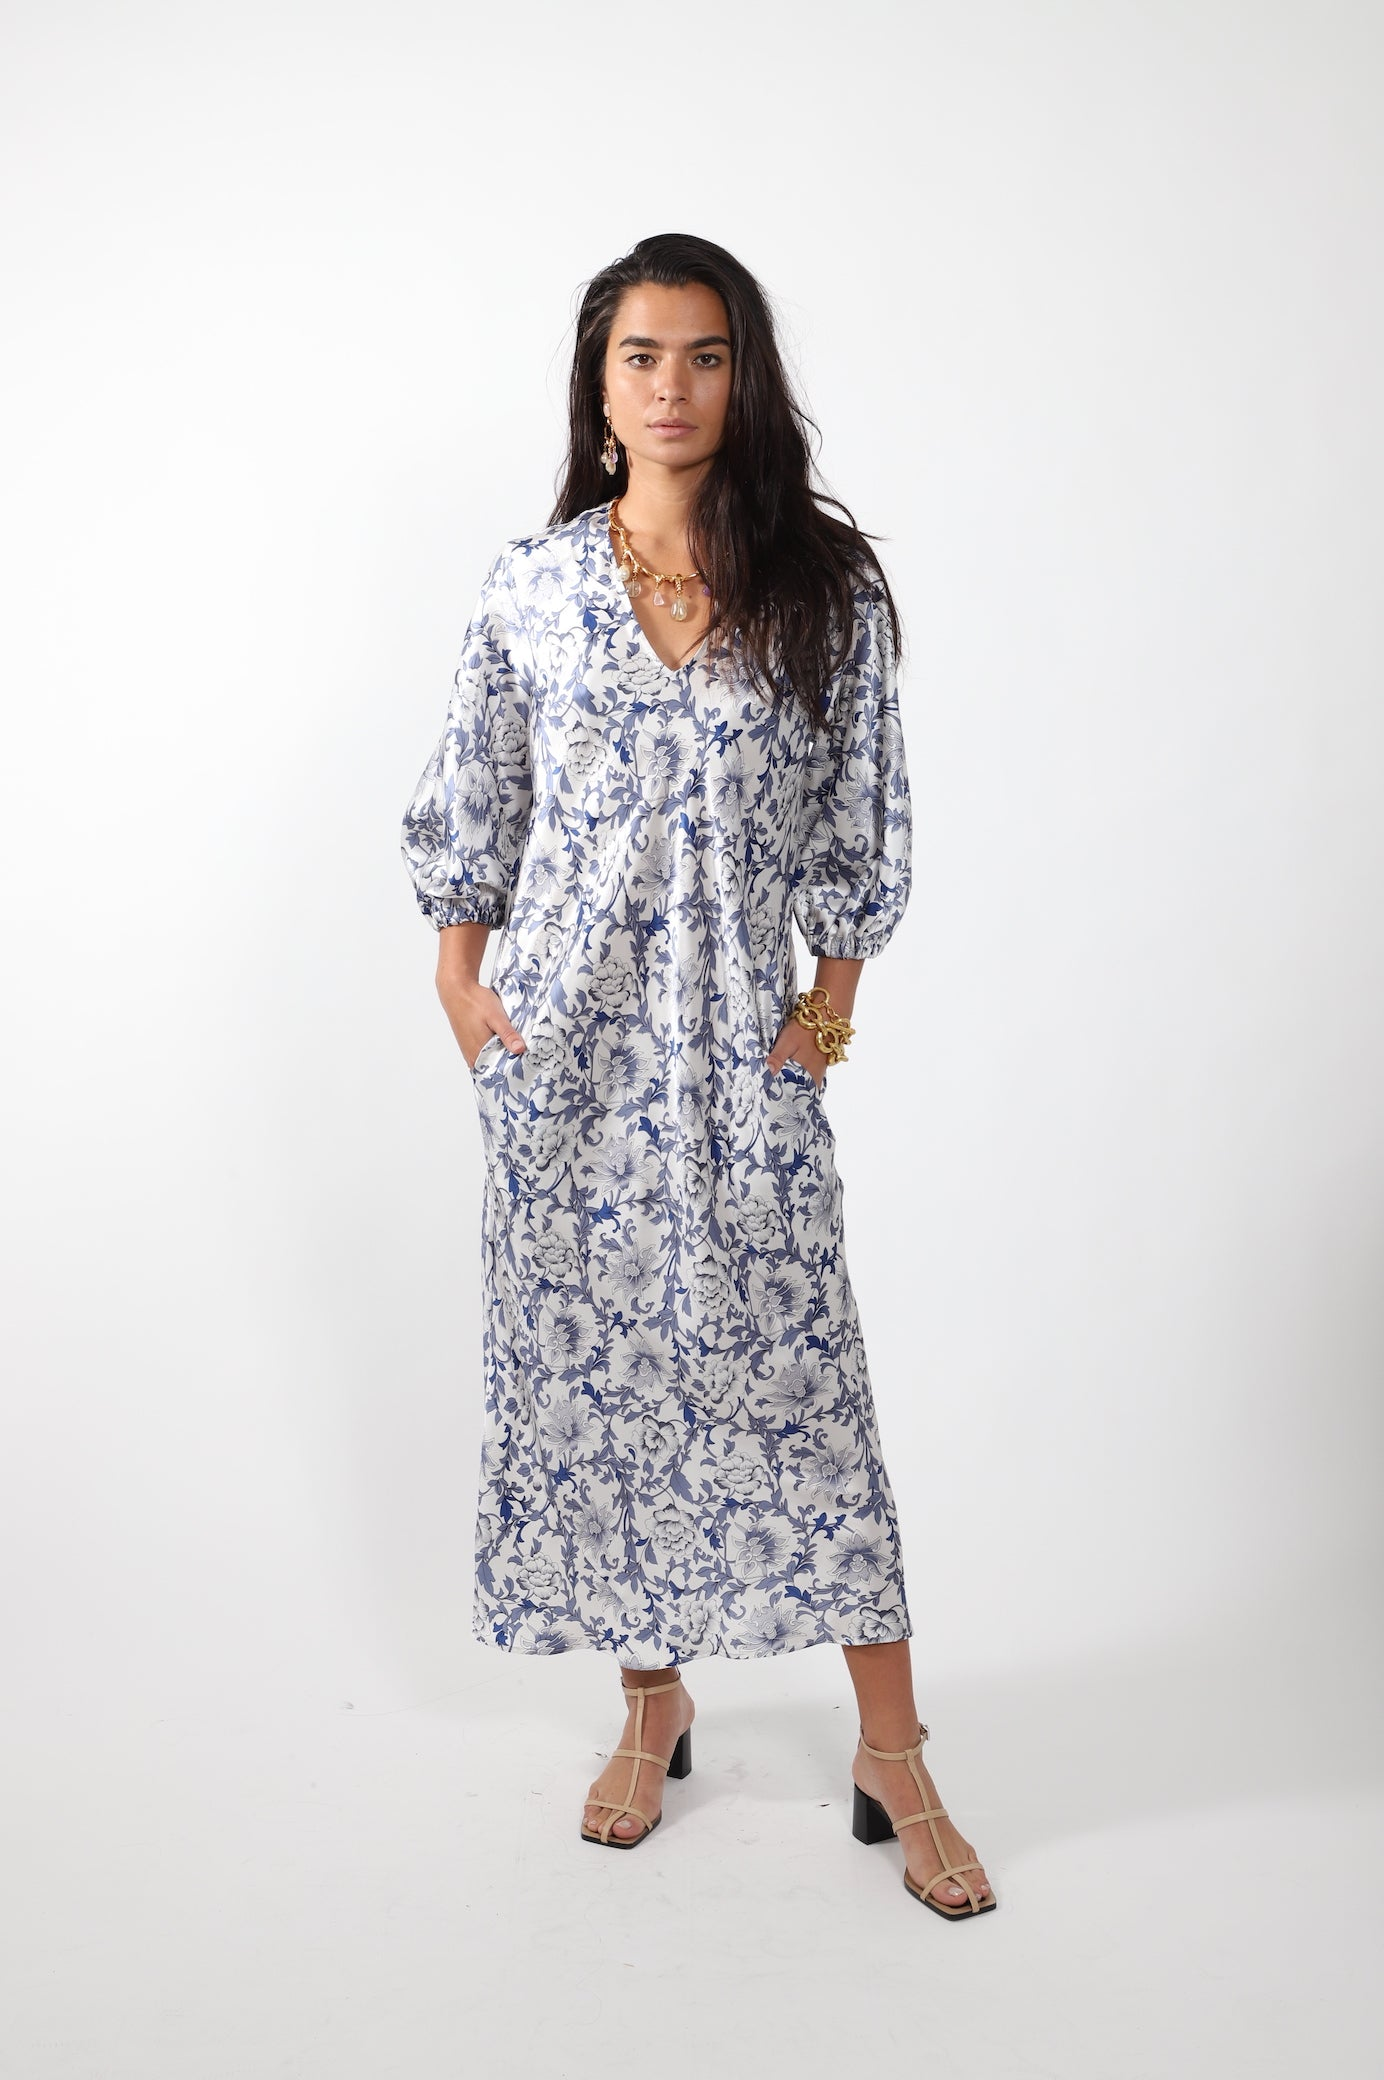 Bias V-Neck Dress · Navy and White Floral